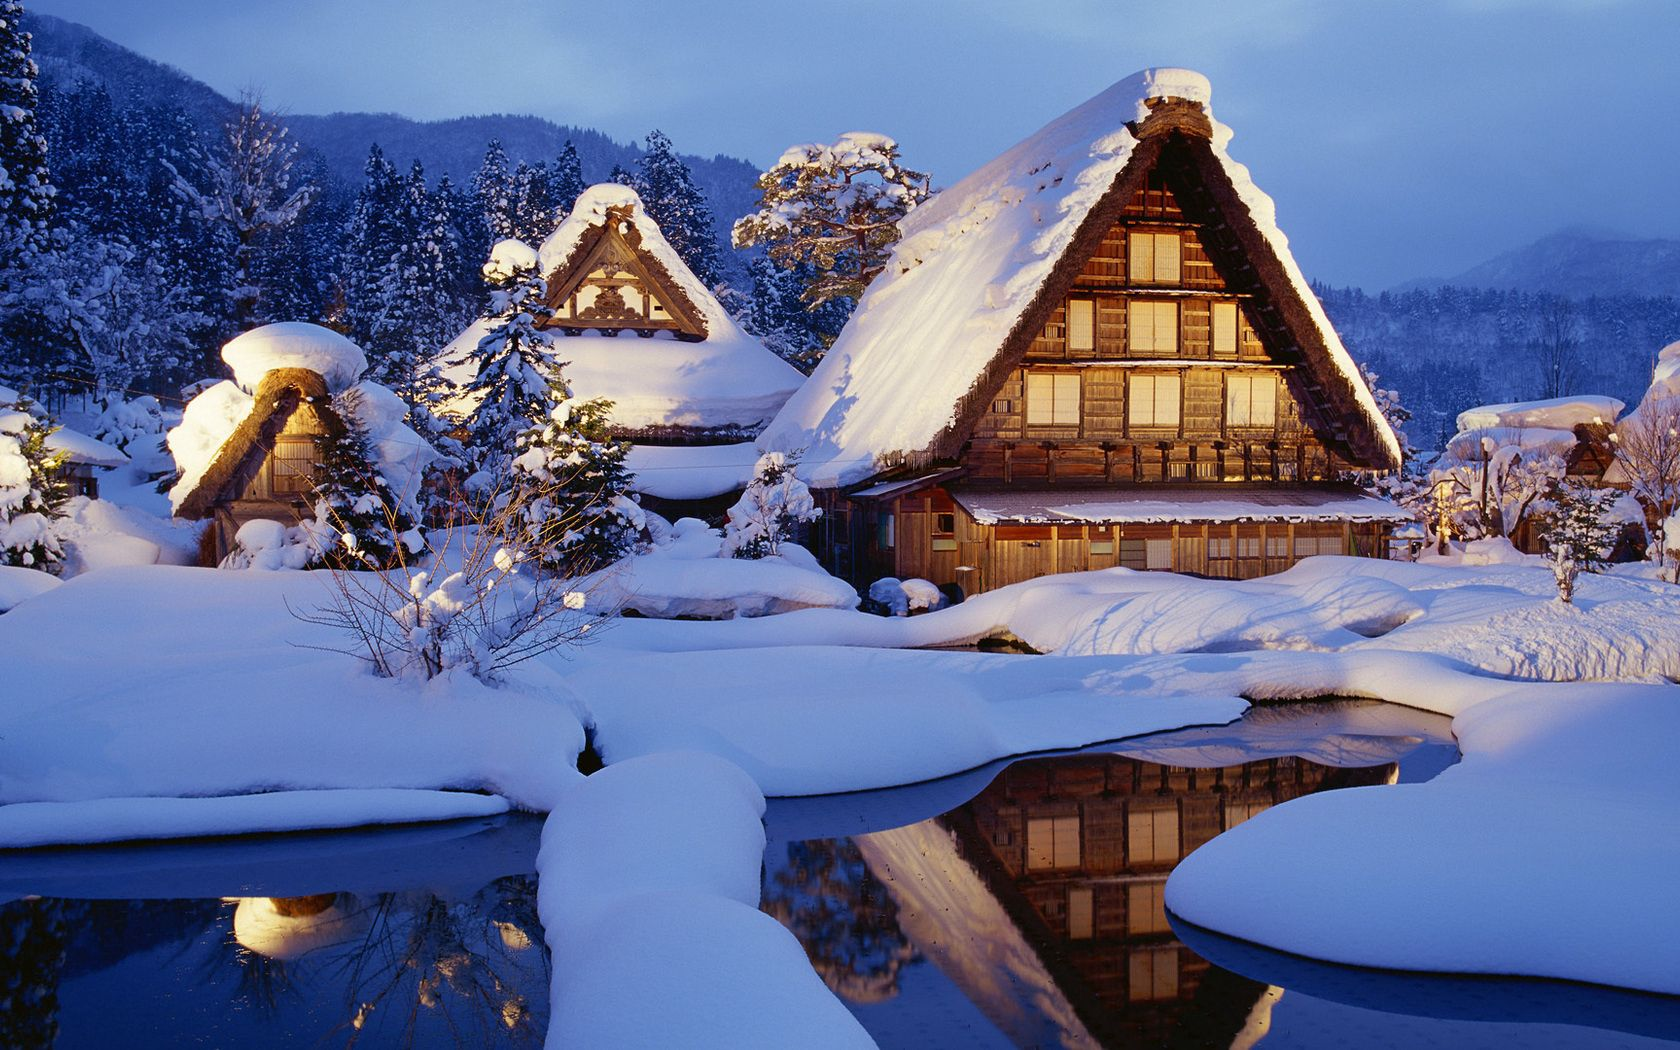 109737 download wallpaper Winter, Nature, Houses, Snow, Lake, Reflection, Shine, Light, Japan, Small Houses screensavers and pictures for free